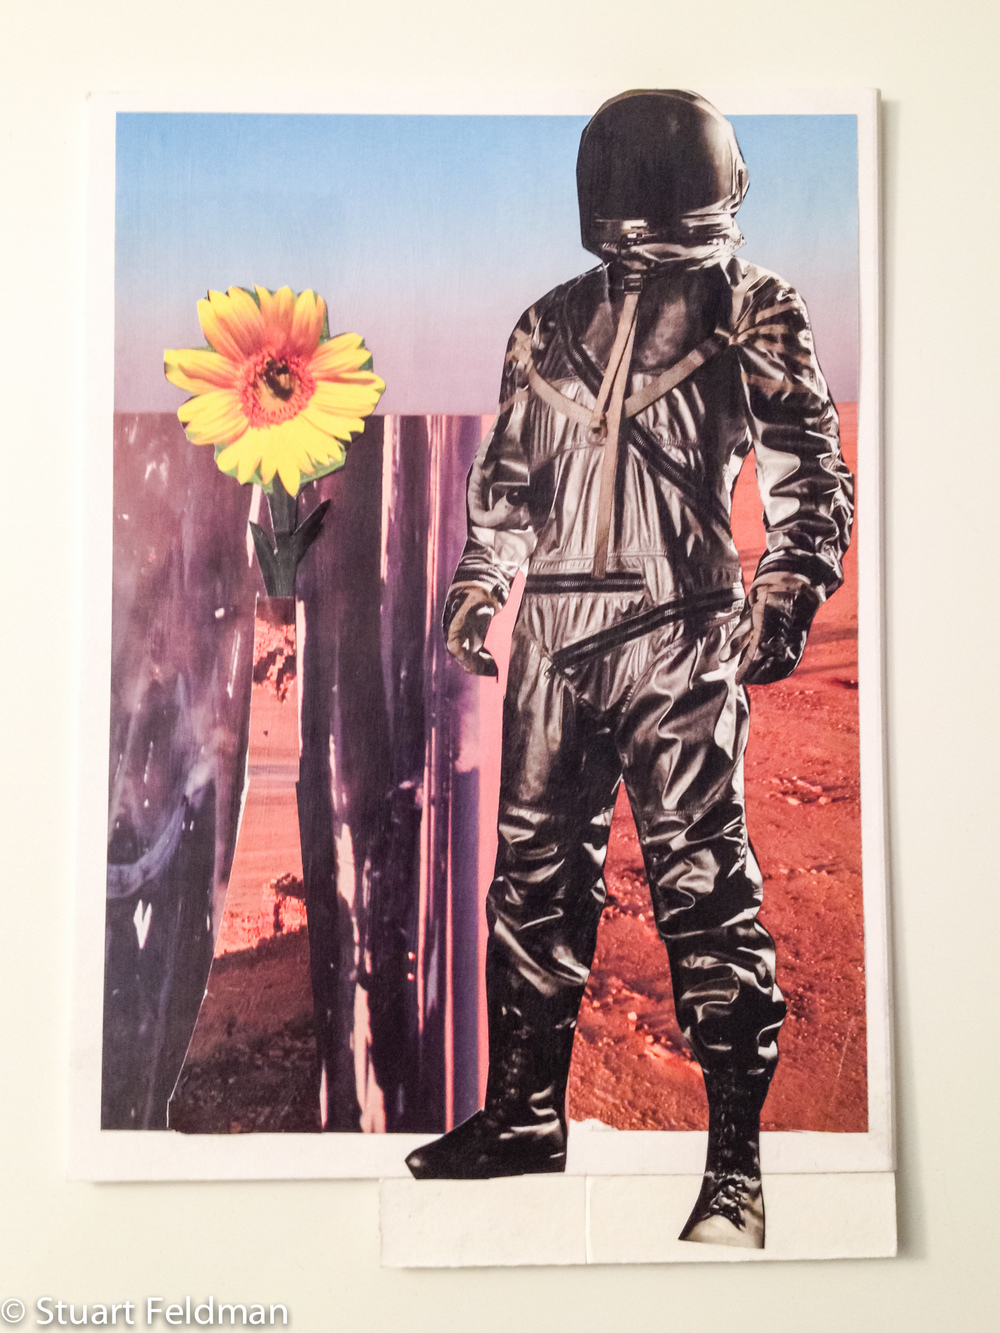 Spaceman and Flower. Collage. 2013.